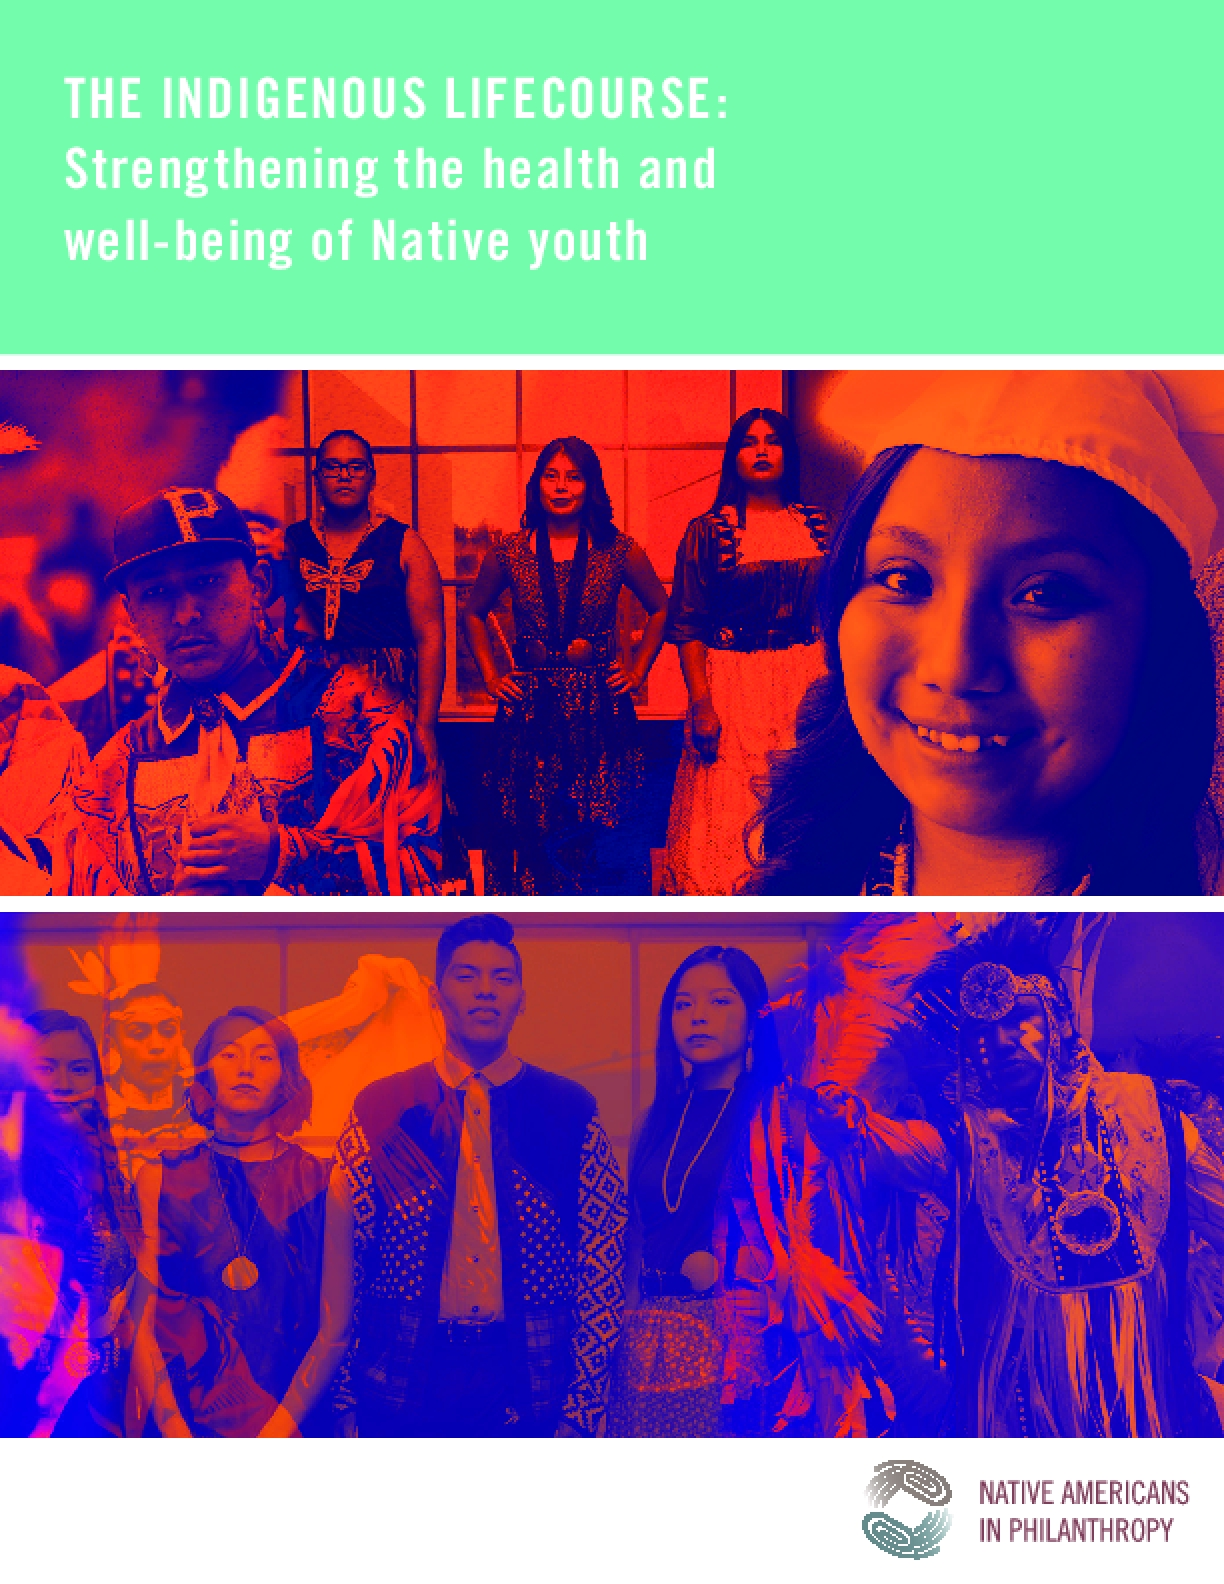 The Indigenous Lifecourse: Strengthening the Health and Well-being of Native Youth